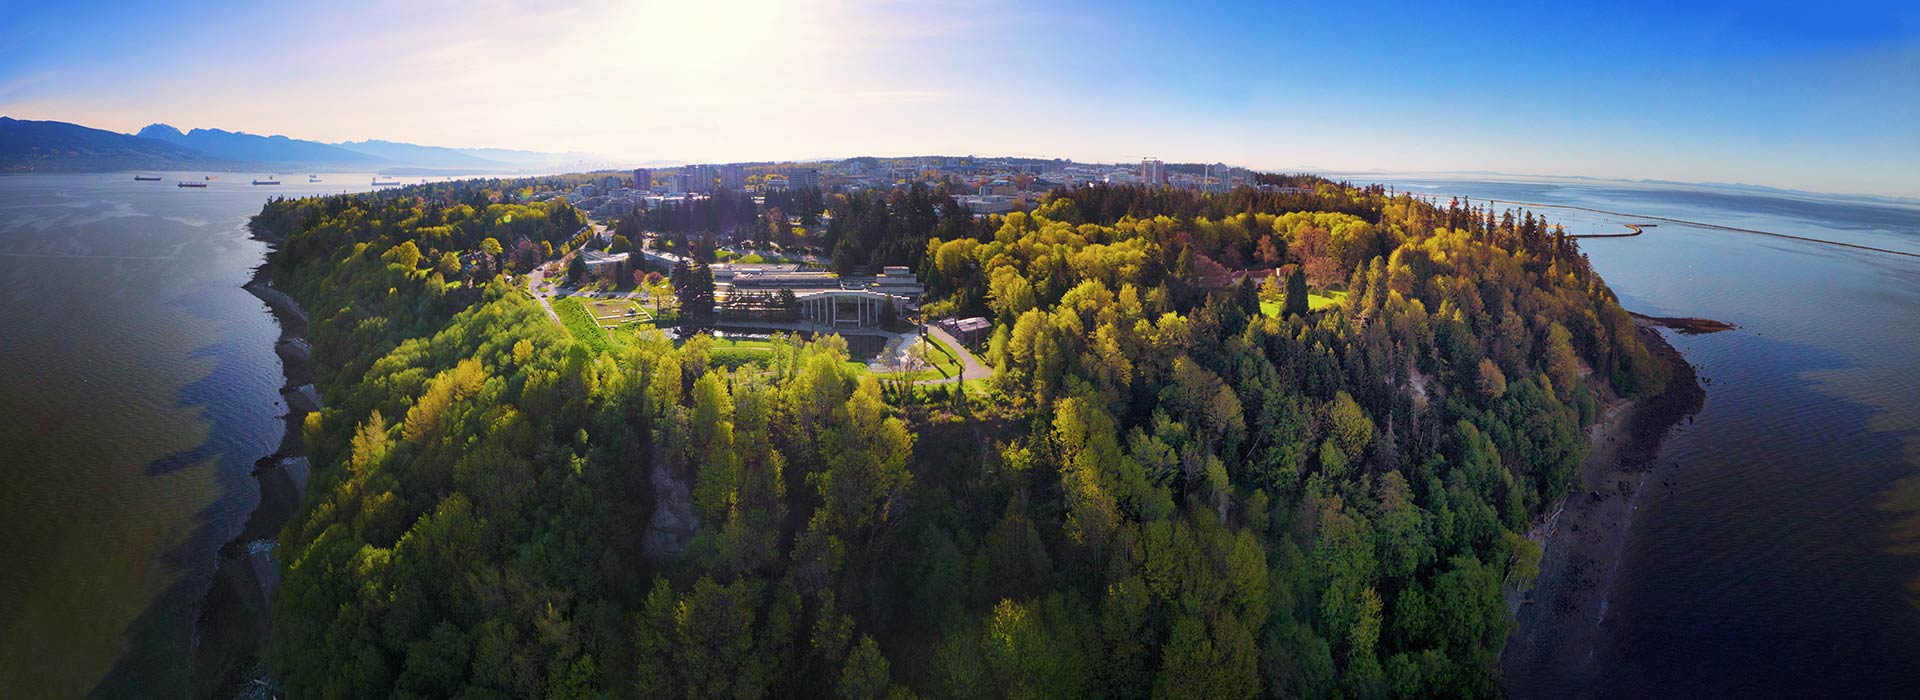 Aerial view of the University of British Columbia